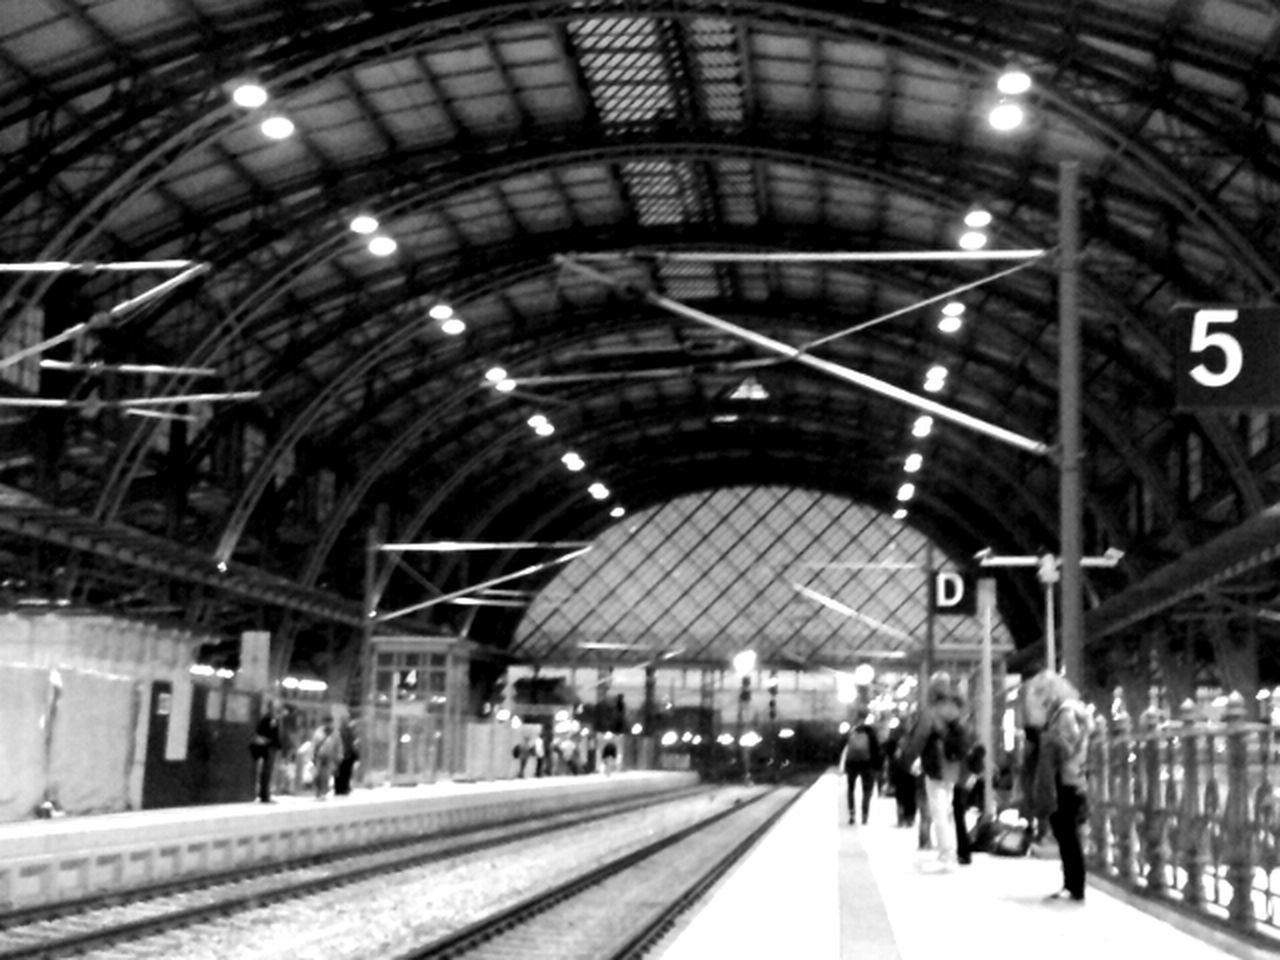 railroad station platform, transportation, railroad station, indoors, railroad track, rail transportation, illuminated, built structure, architecture, time, day, clock, no people